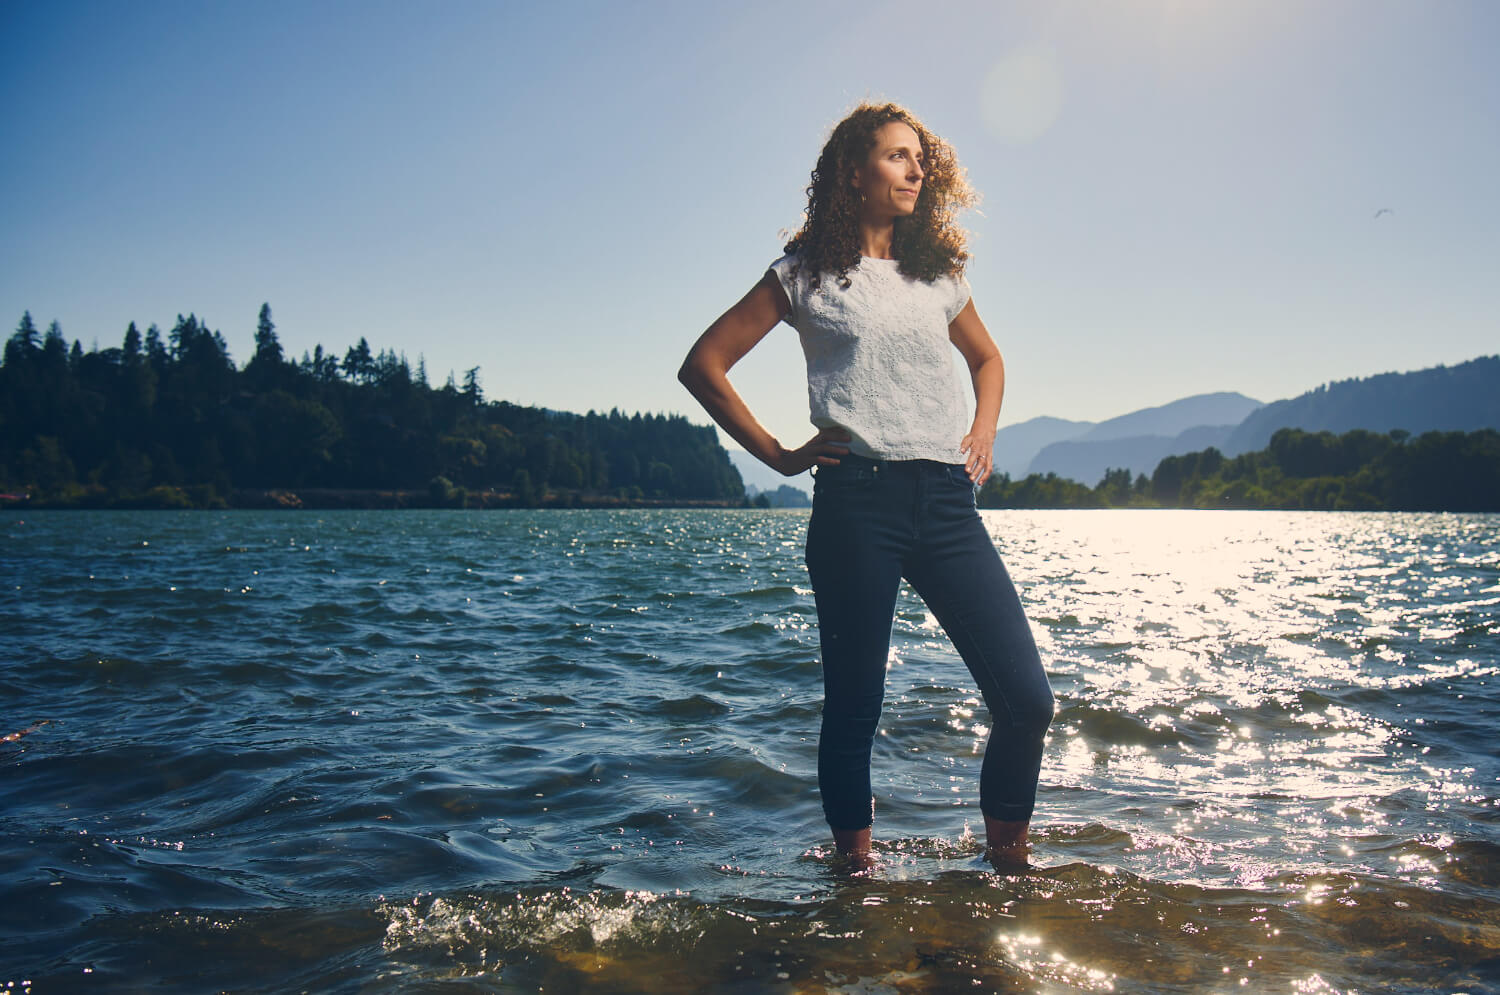 A person stands with their hands on their hips next to a river.